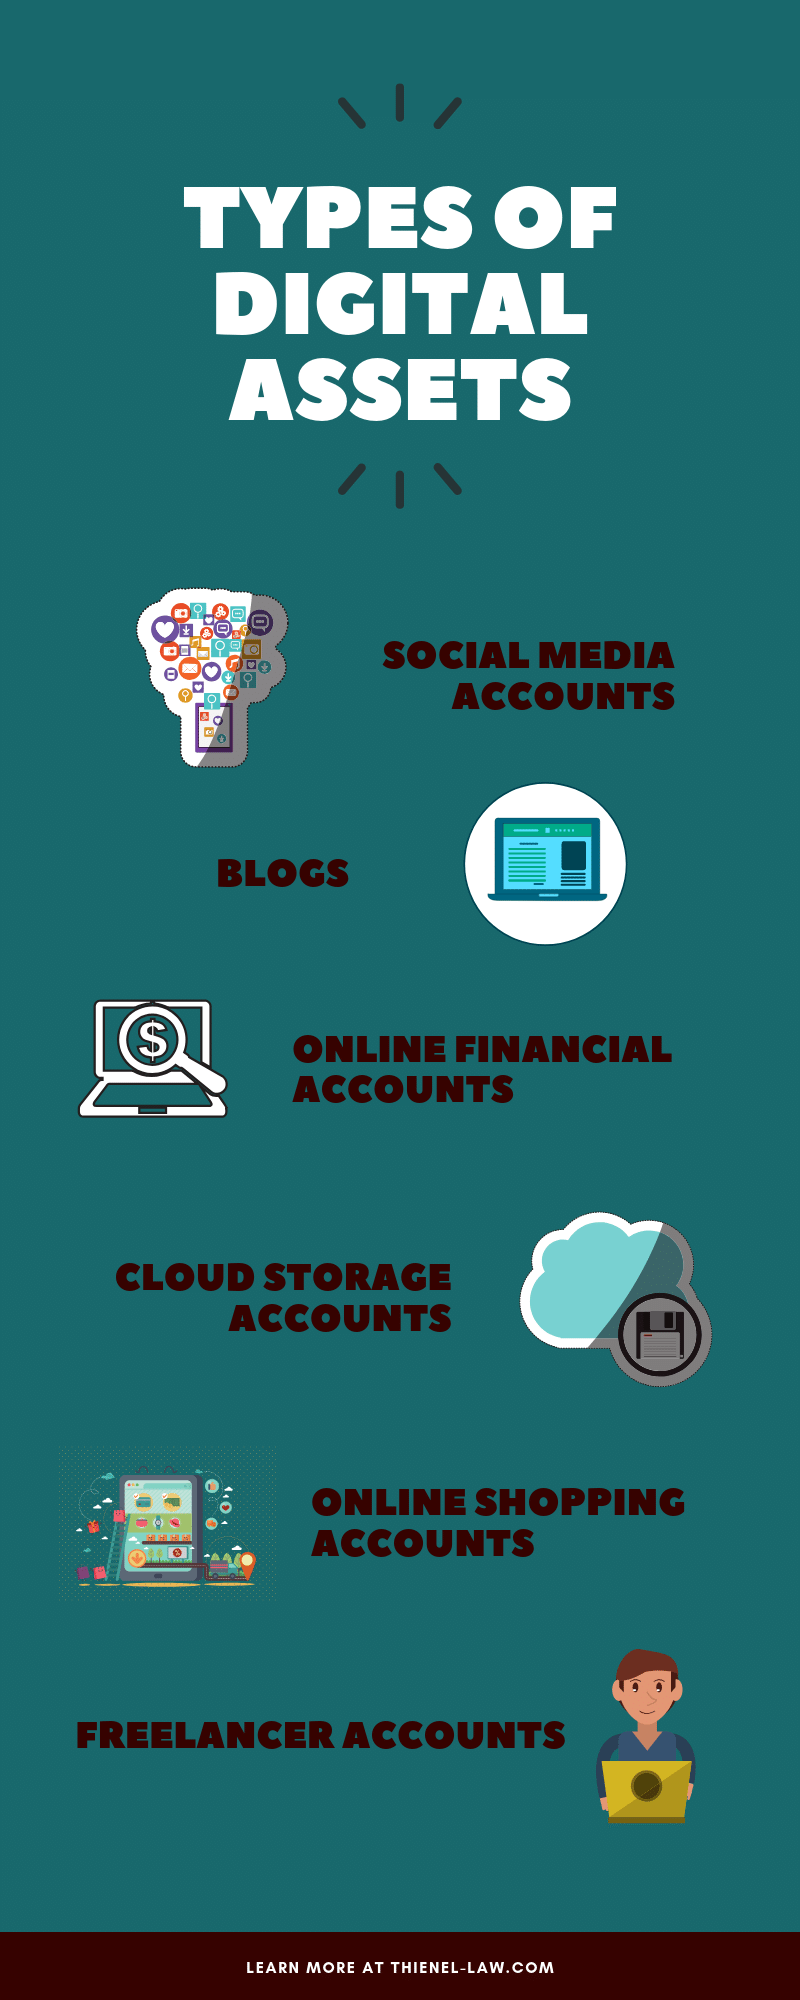 Types of Digital Assets - Infographic.png